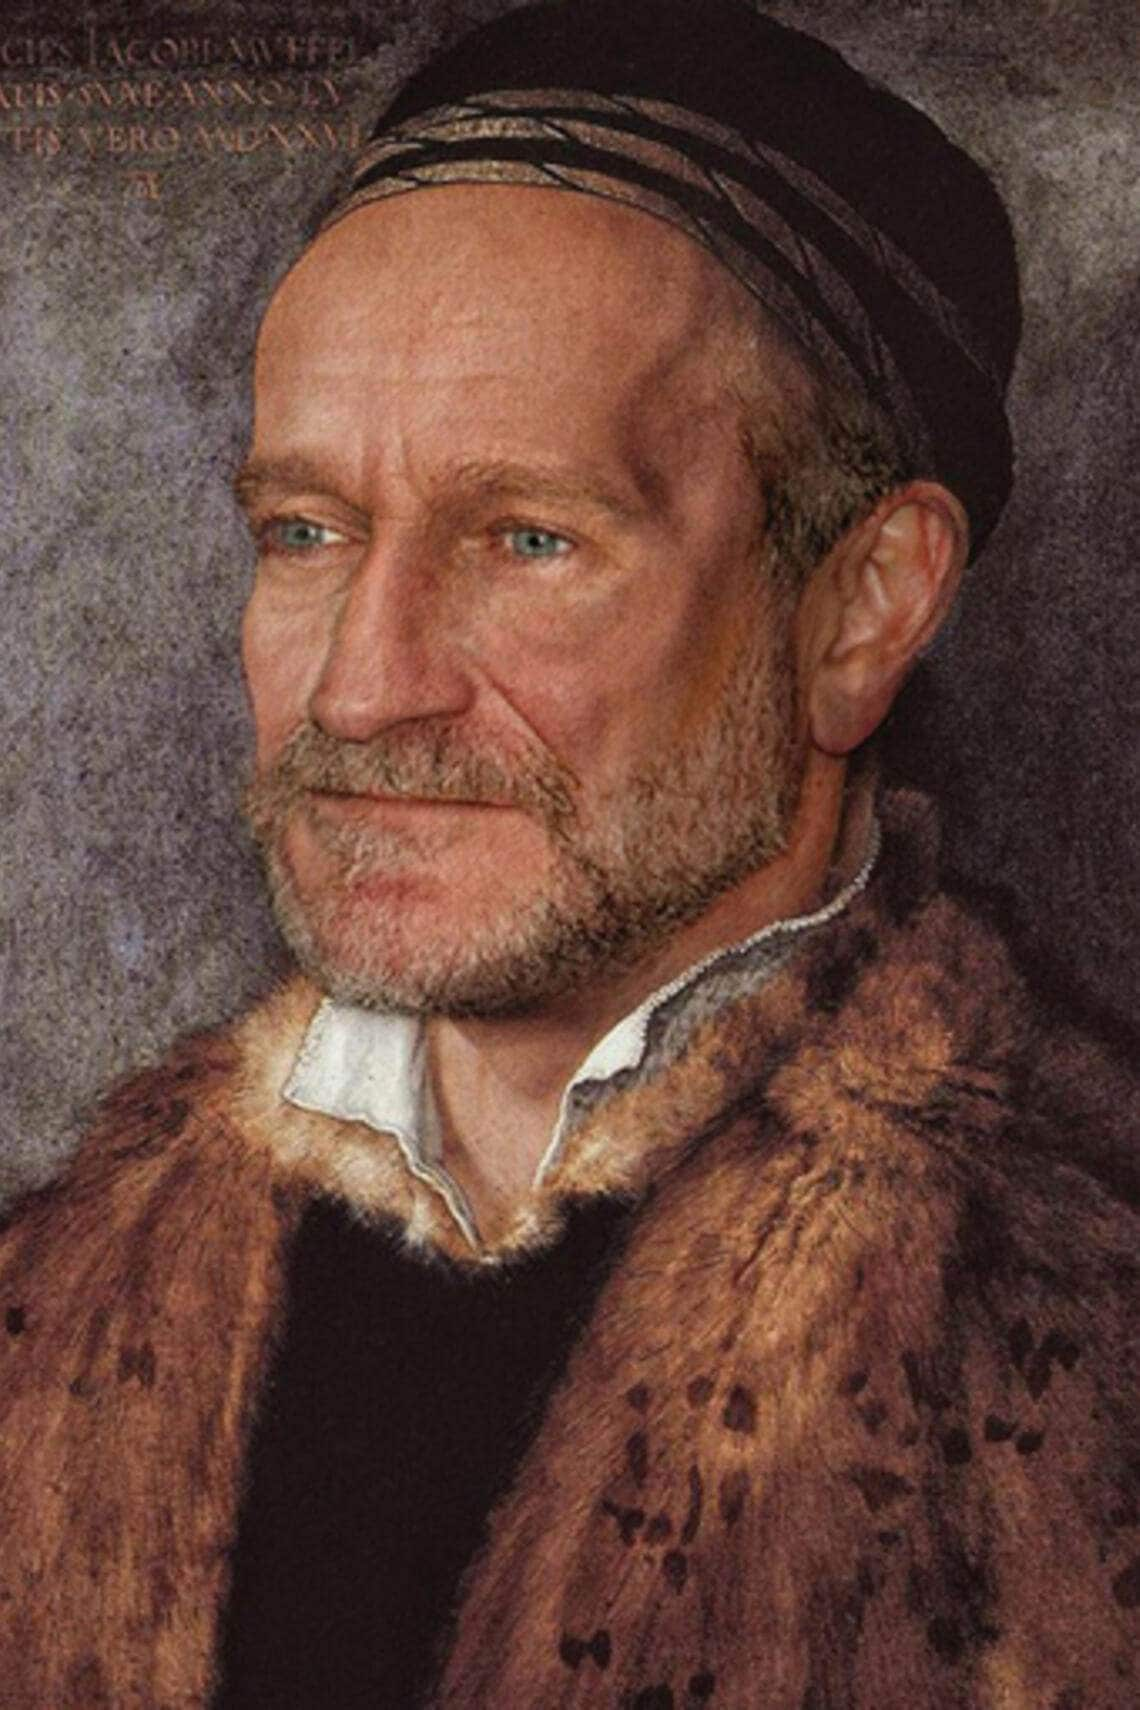 Robin Williams Worth1000.com Renaissance